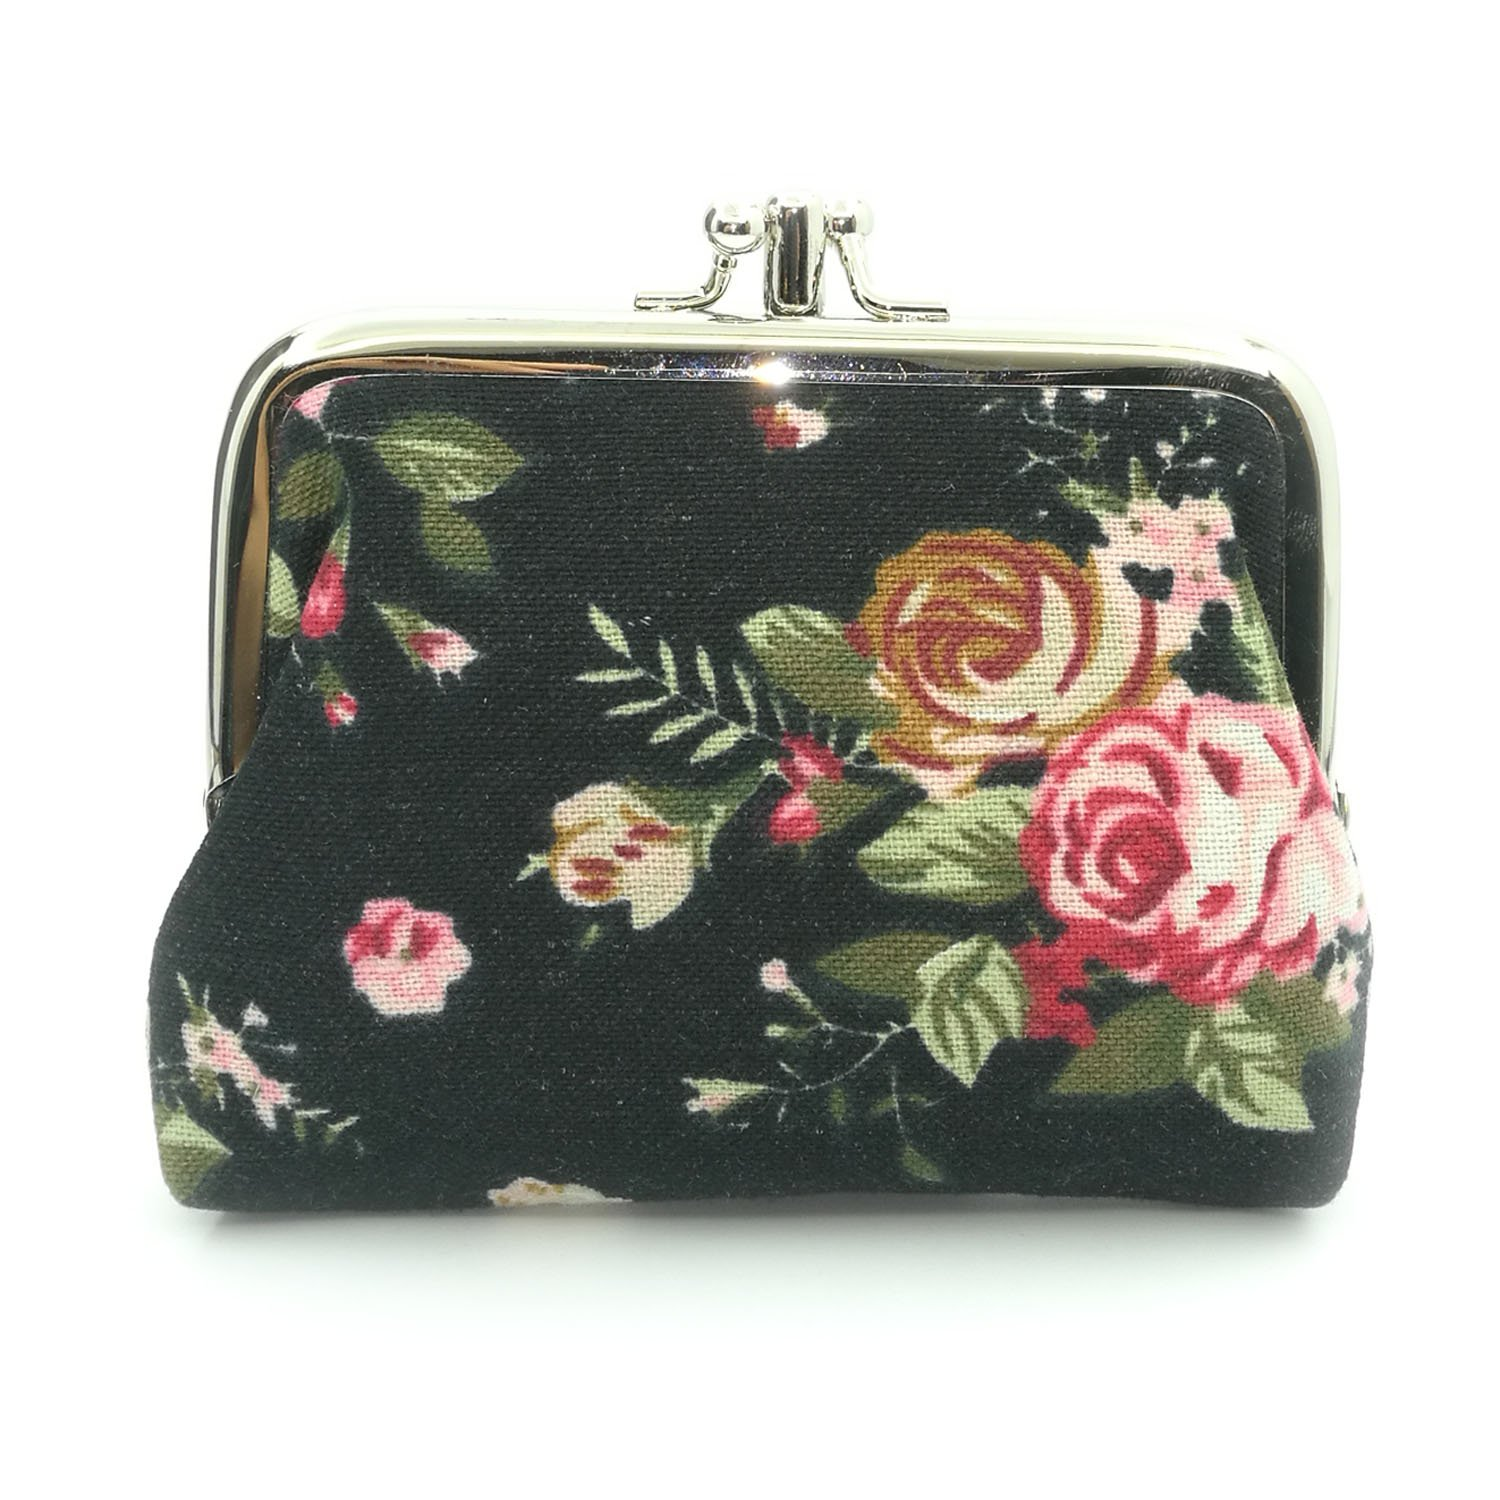 Amazon.com: Cute Floral Buckle Coin Purses